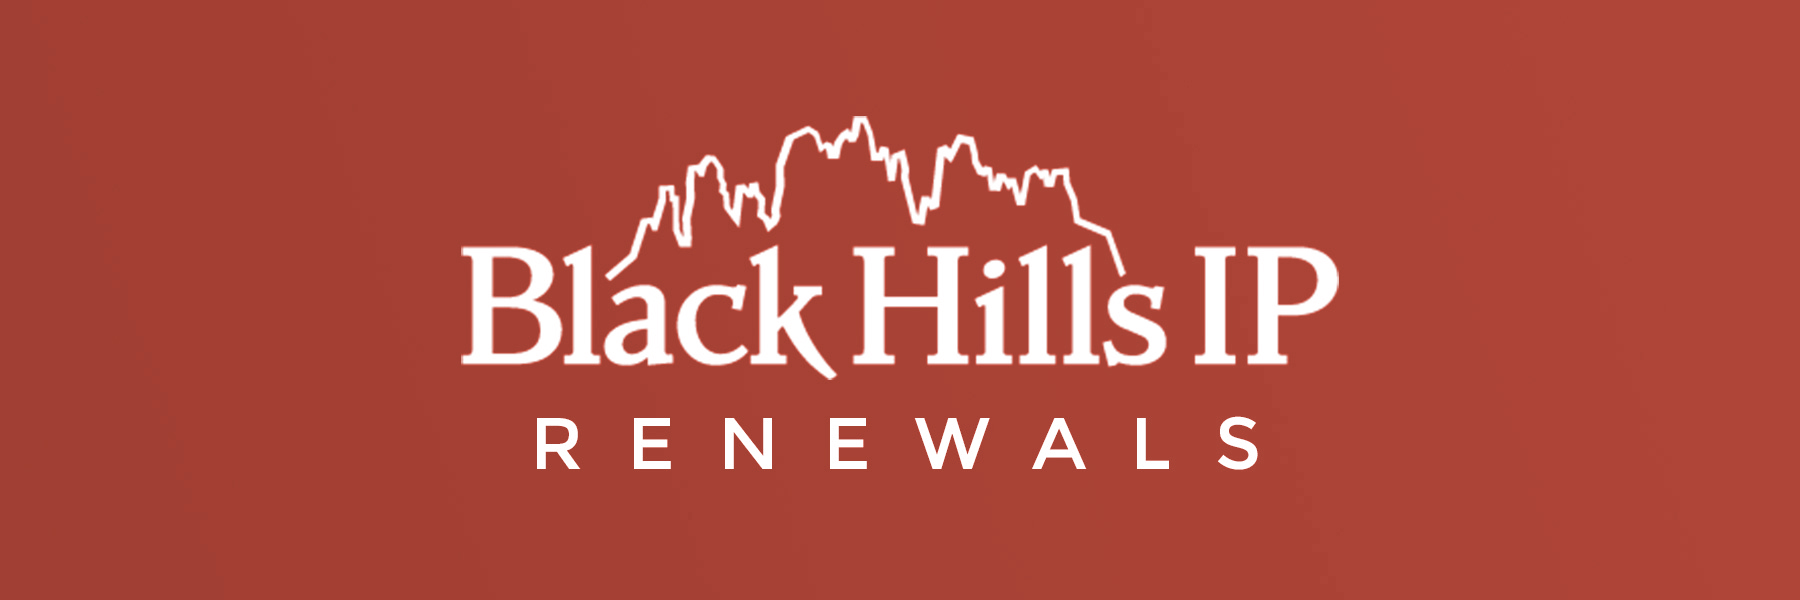 Black Hills IP Renewals